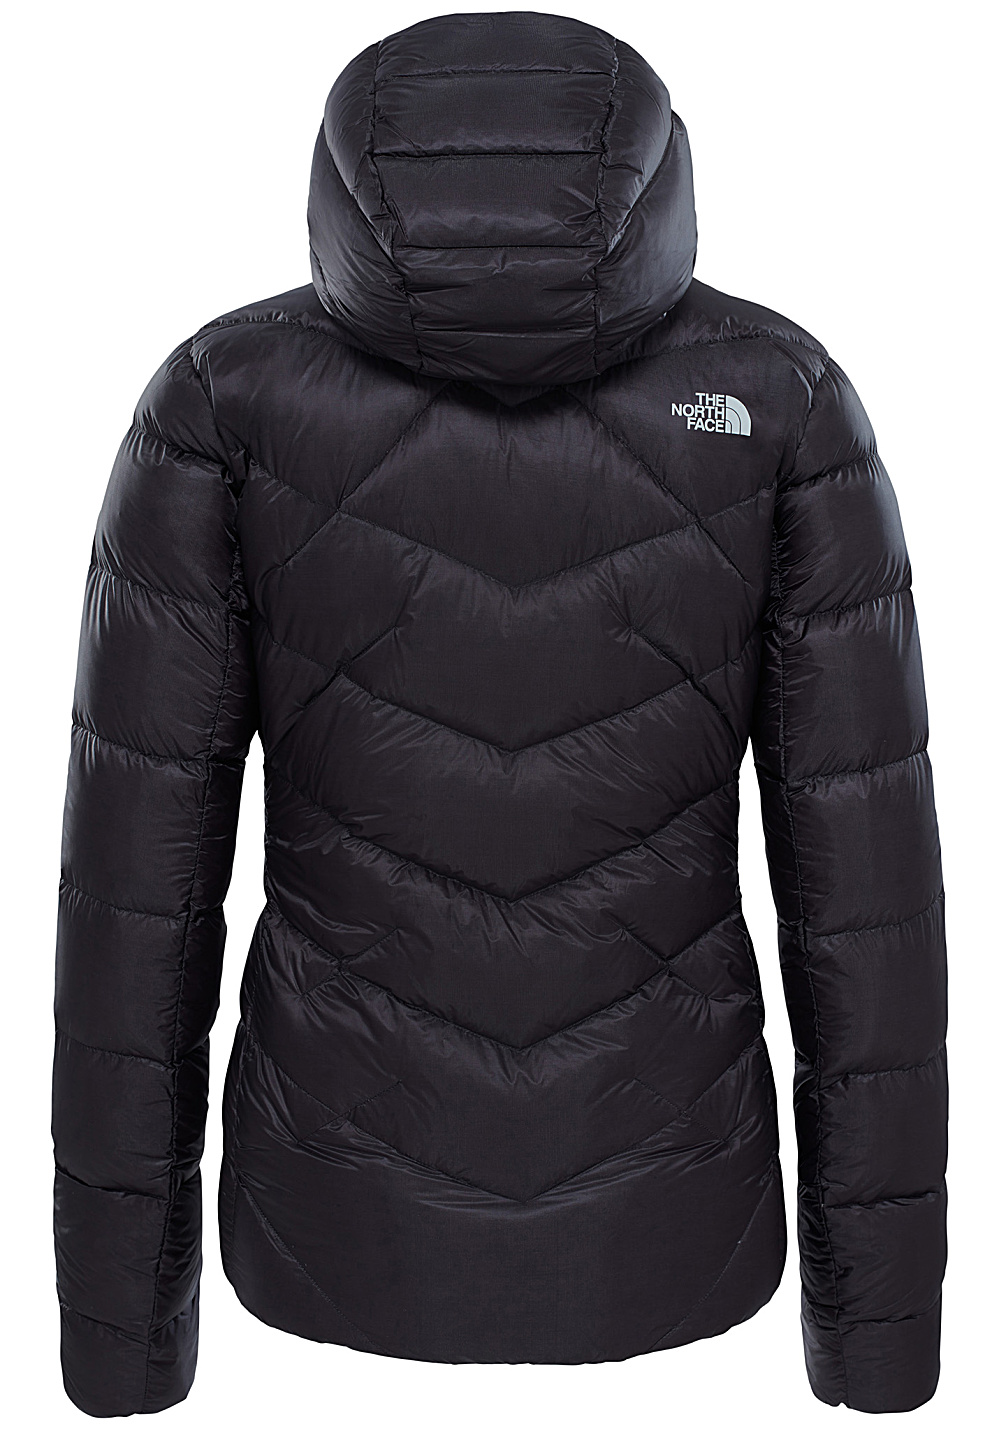 ff69413dd THE NORTH FACE Supercinco Down - Outdoor Jacket for Women - Black ...